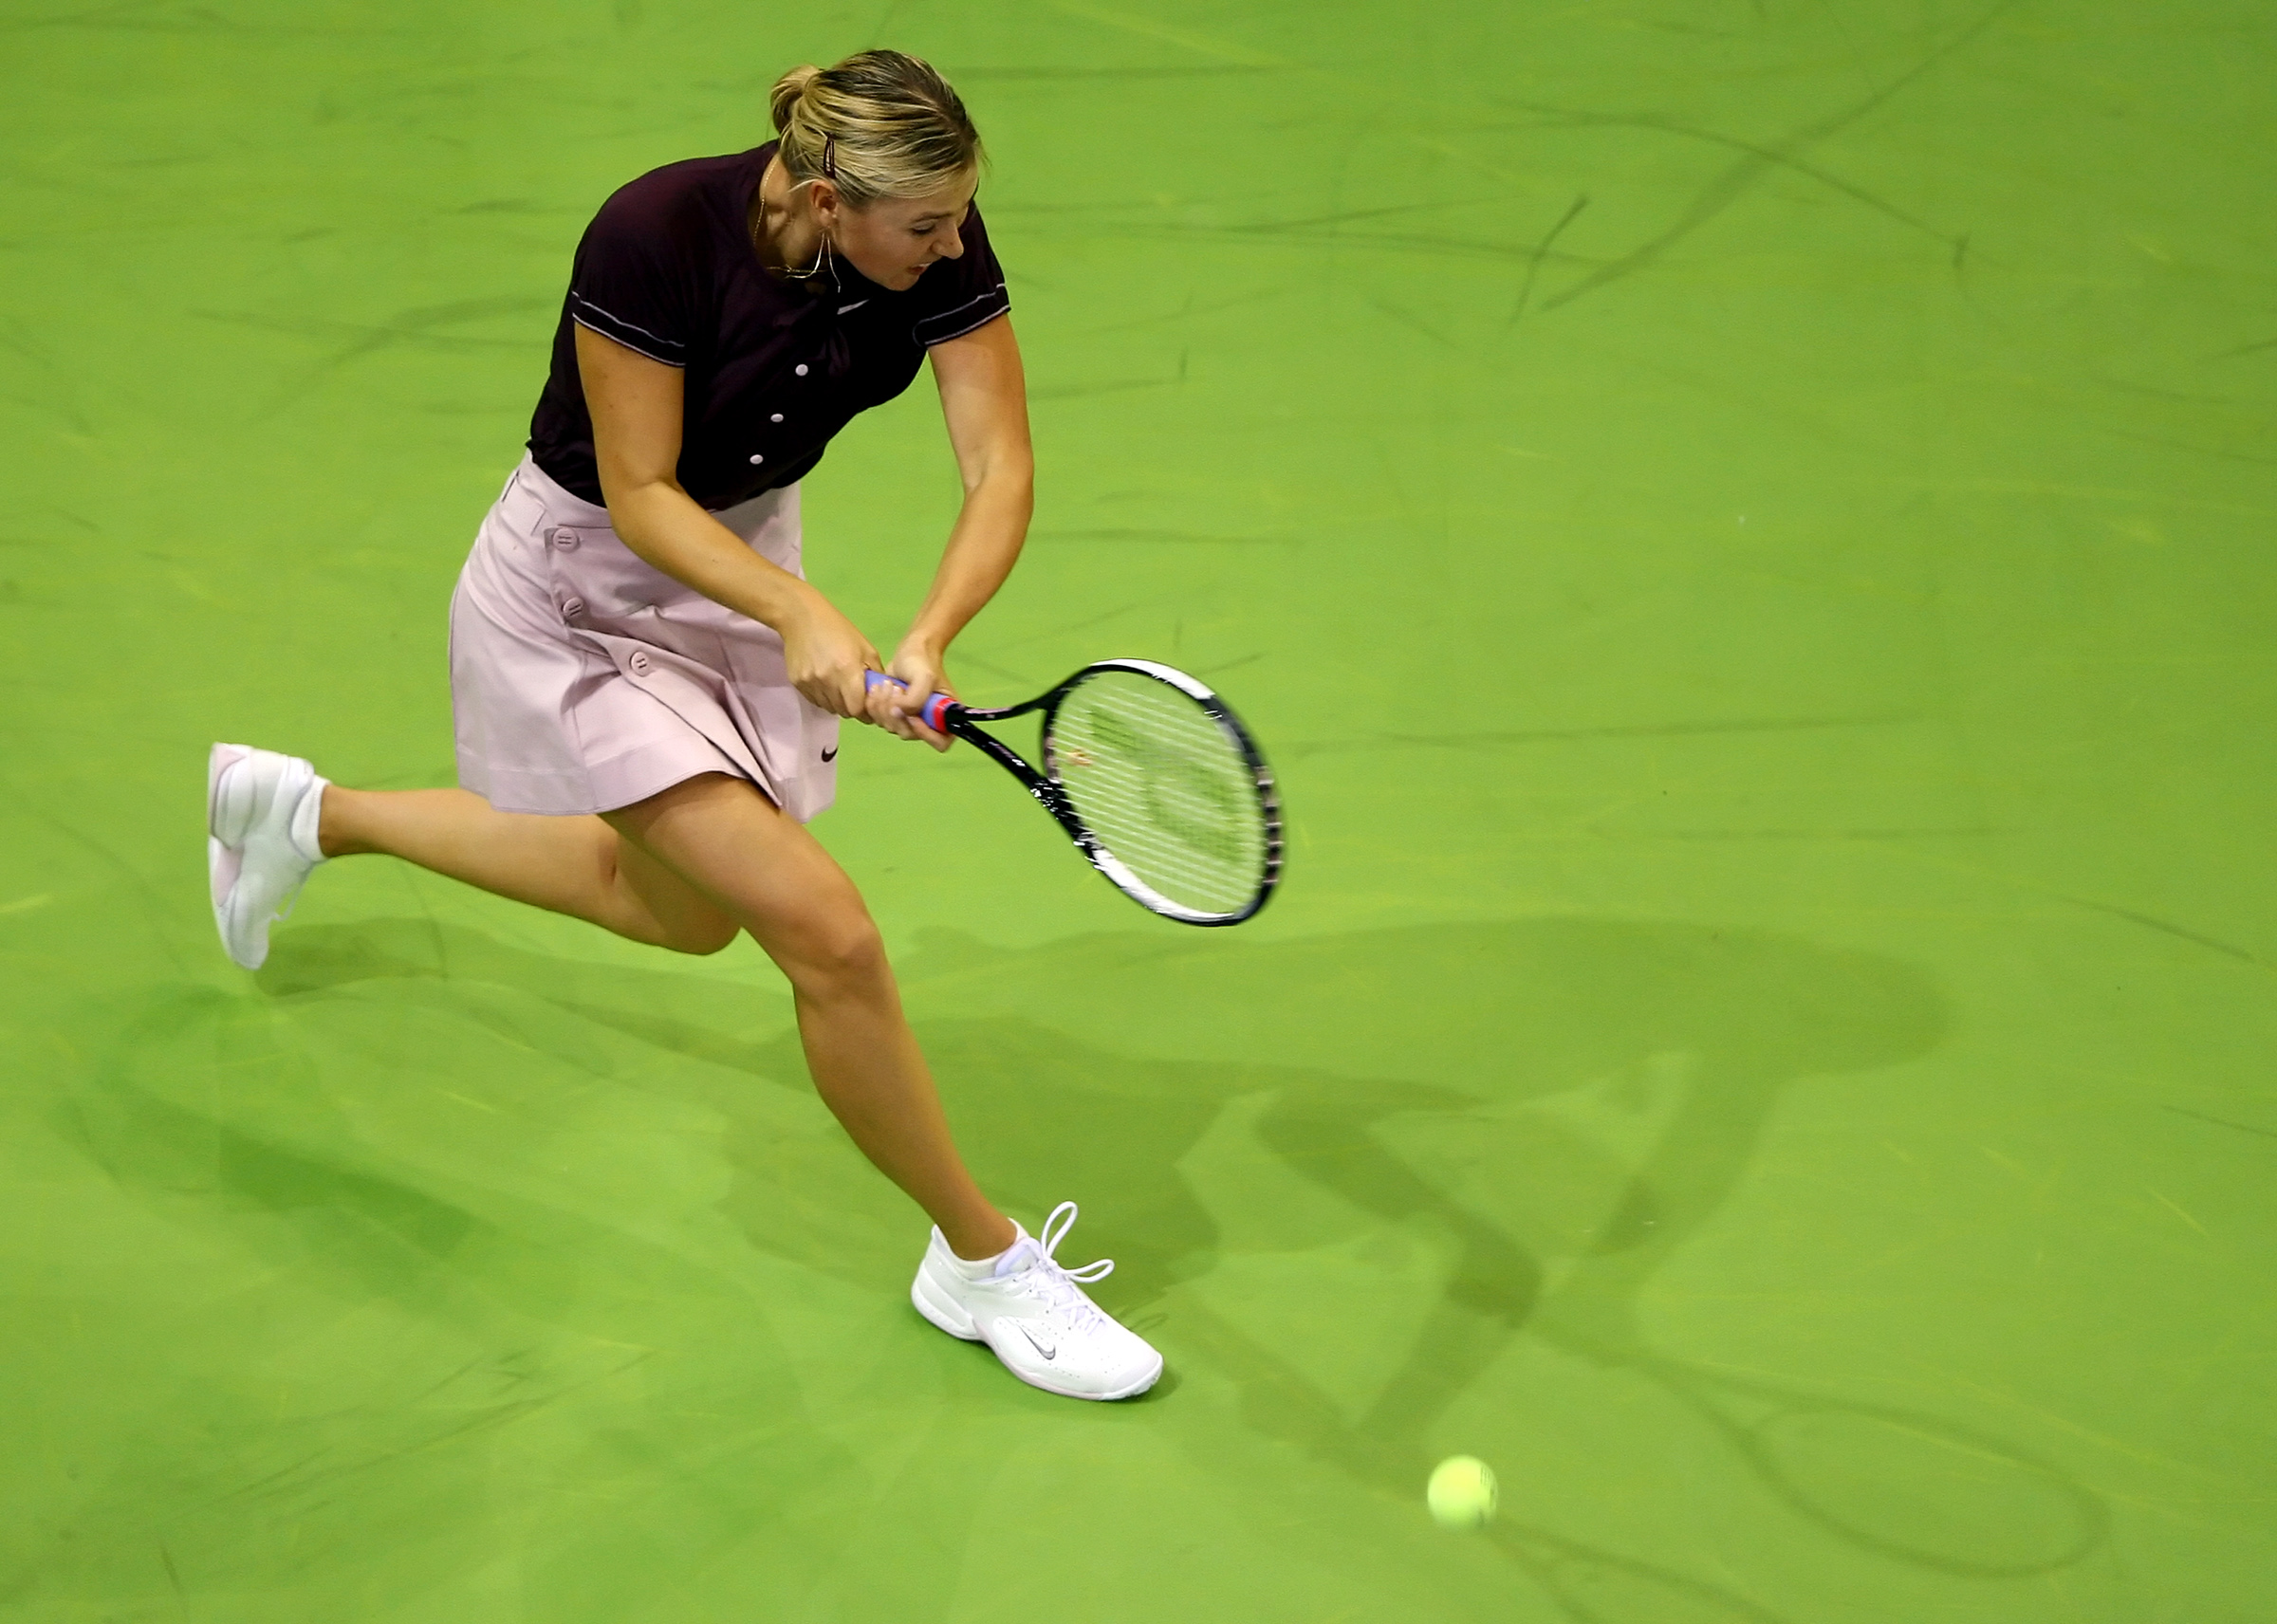 maria sharapova wta tennis - HD 2400×1712